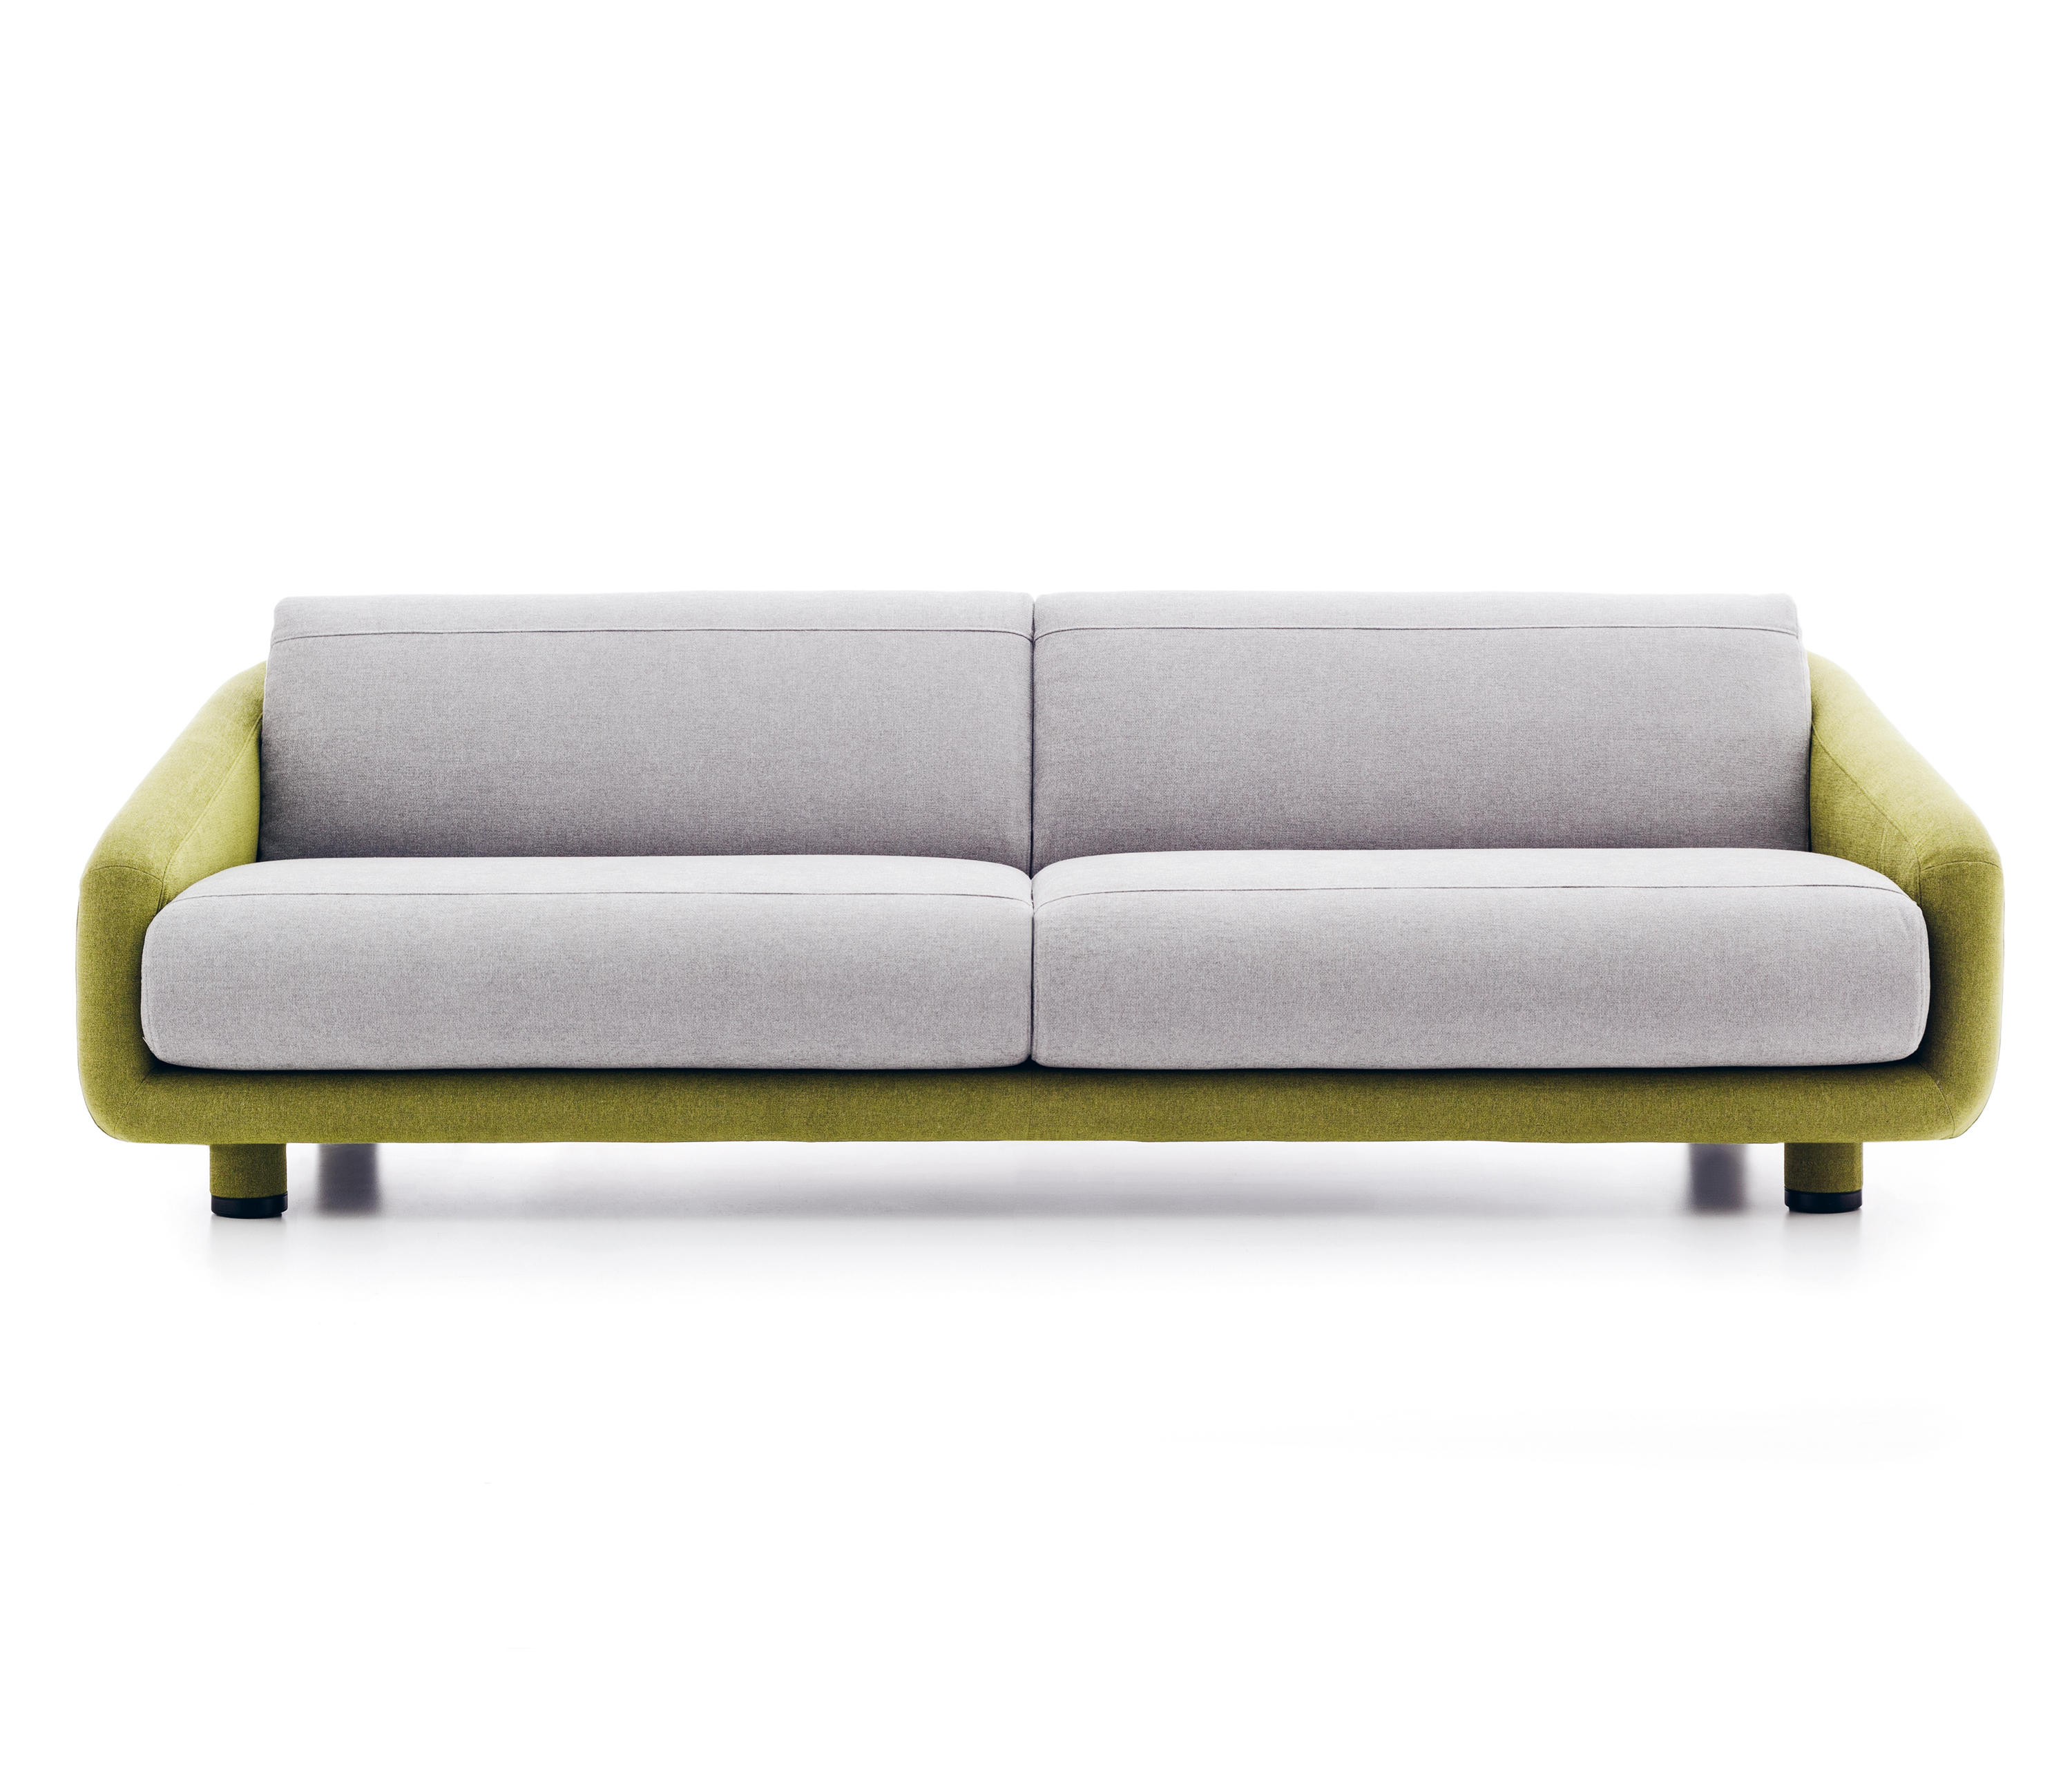 Class Sofa by Carlo Colombo for DITRE ITALIA